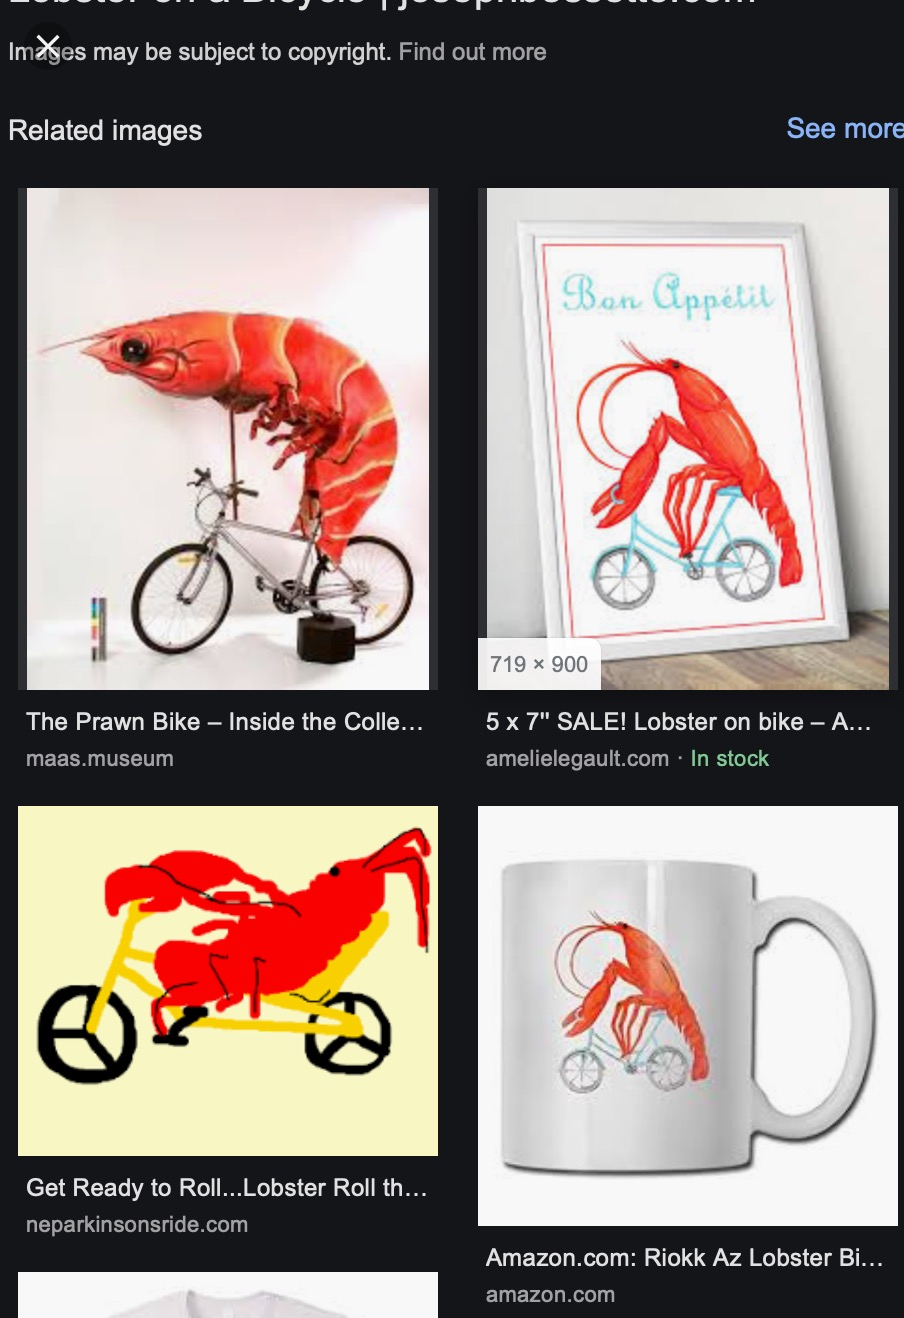 Screenshot from google images showing lobsters on a bike